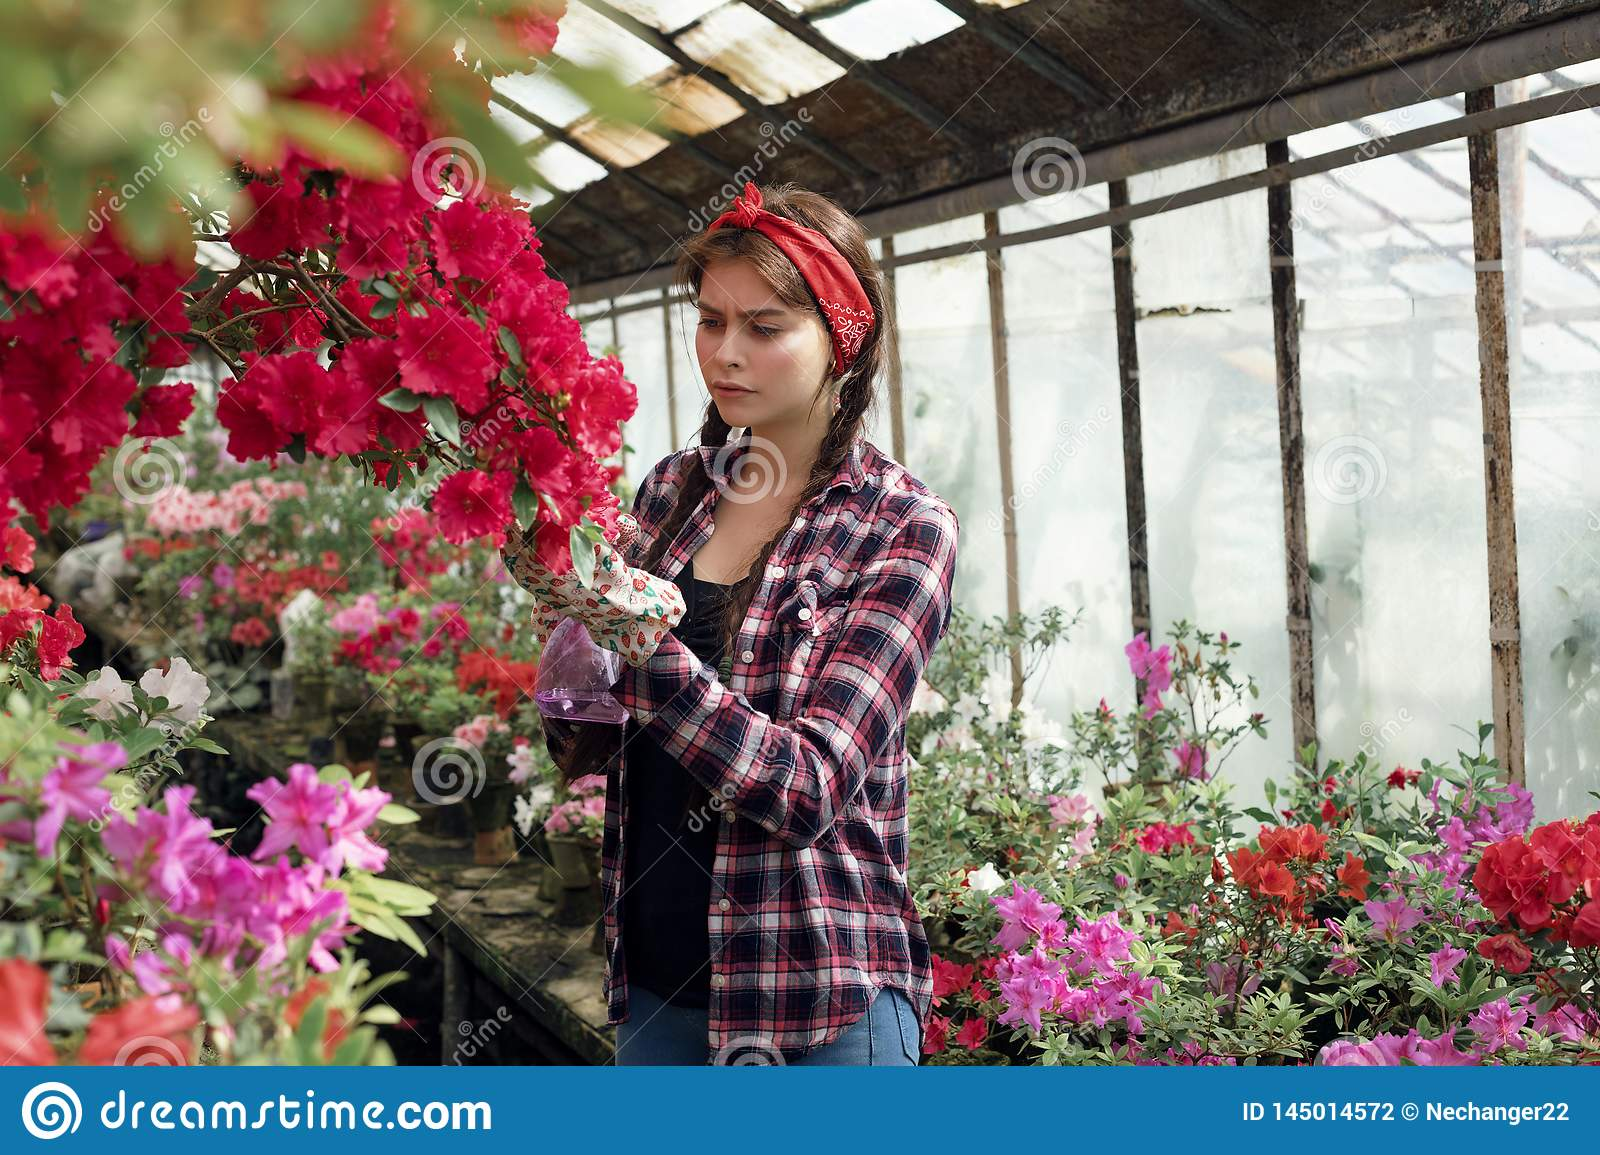 Beautiful girl student with a red headband care flowers in greenhouse in biology class